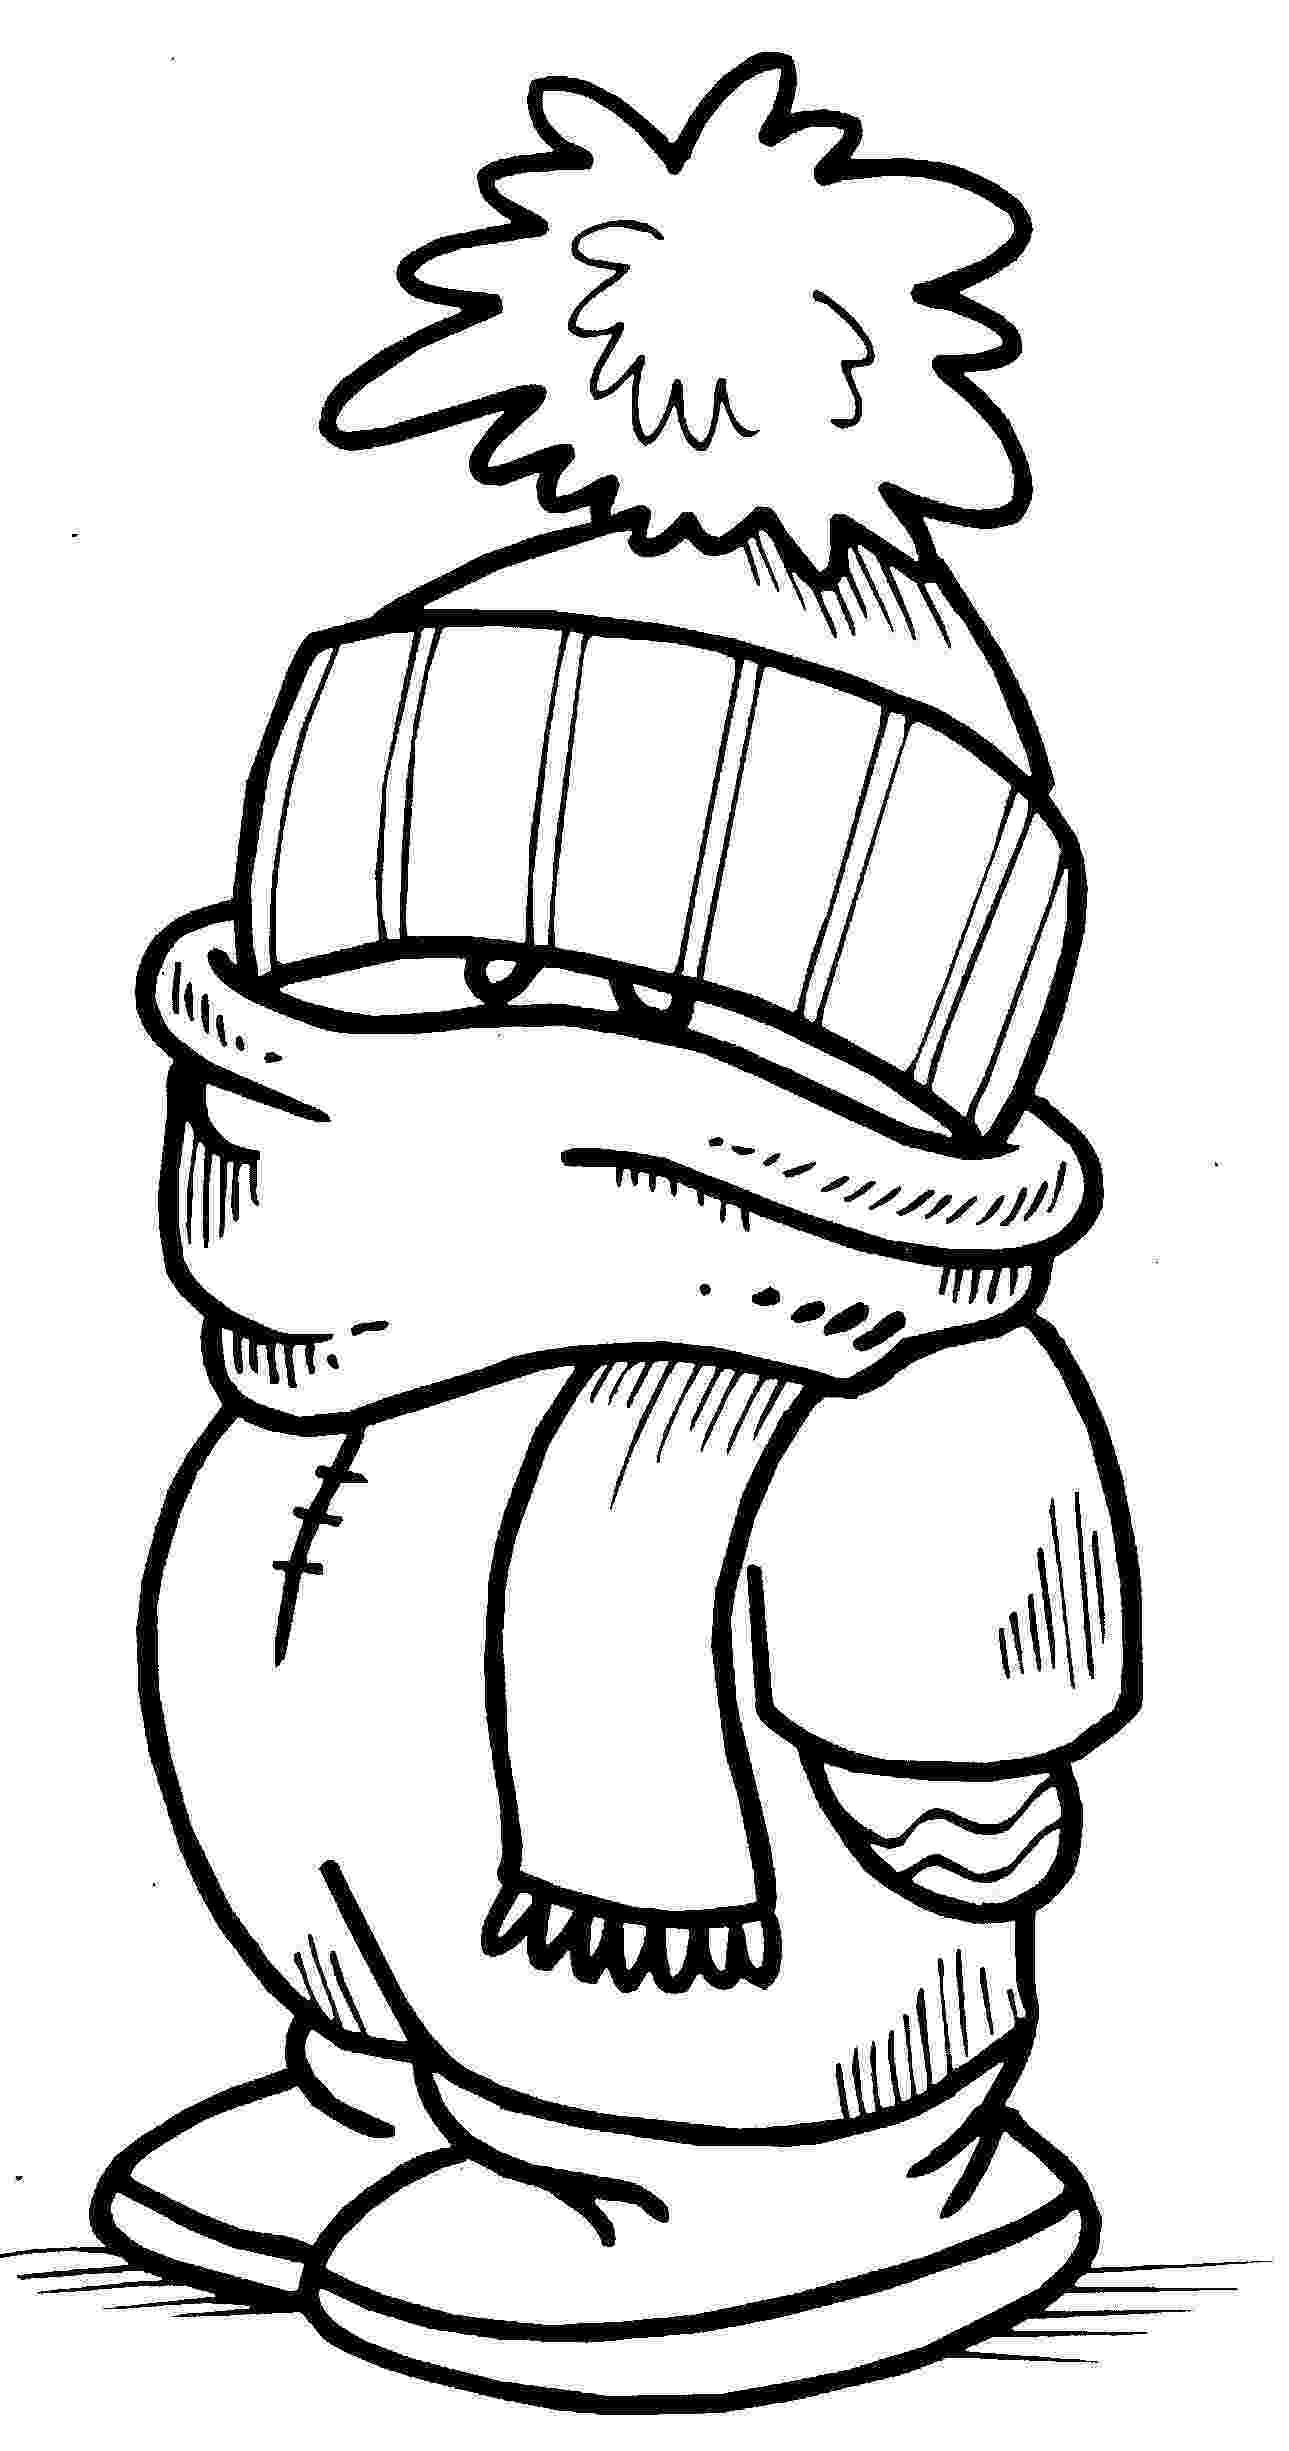 winter printable coloring pages free winter coloring pages to download and print for free winter coloring printable free pages